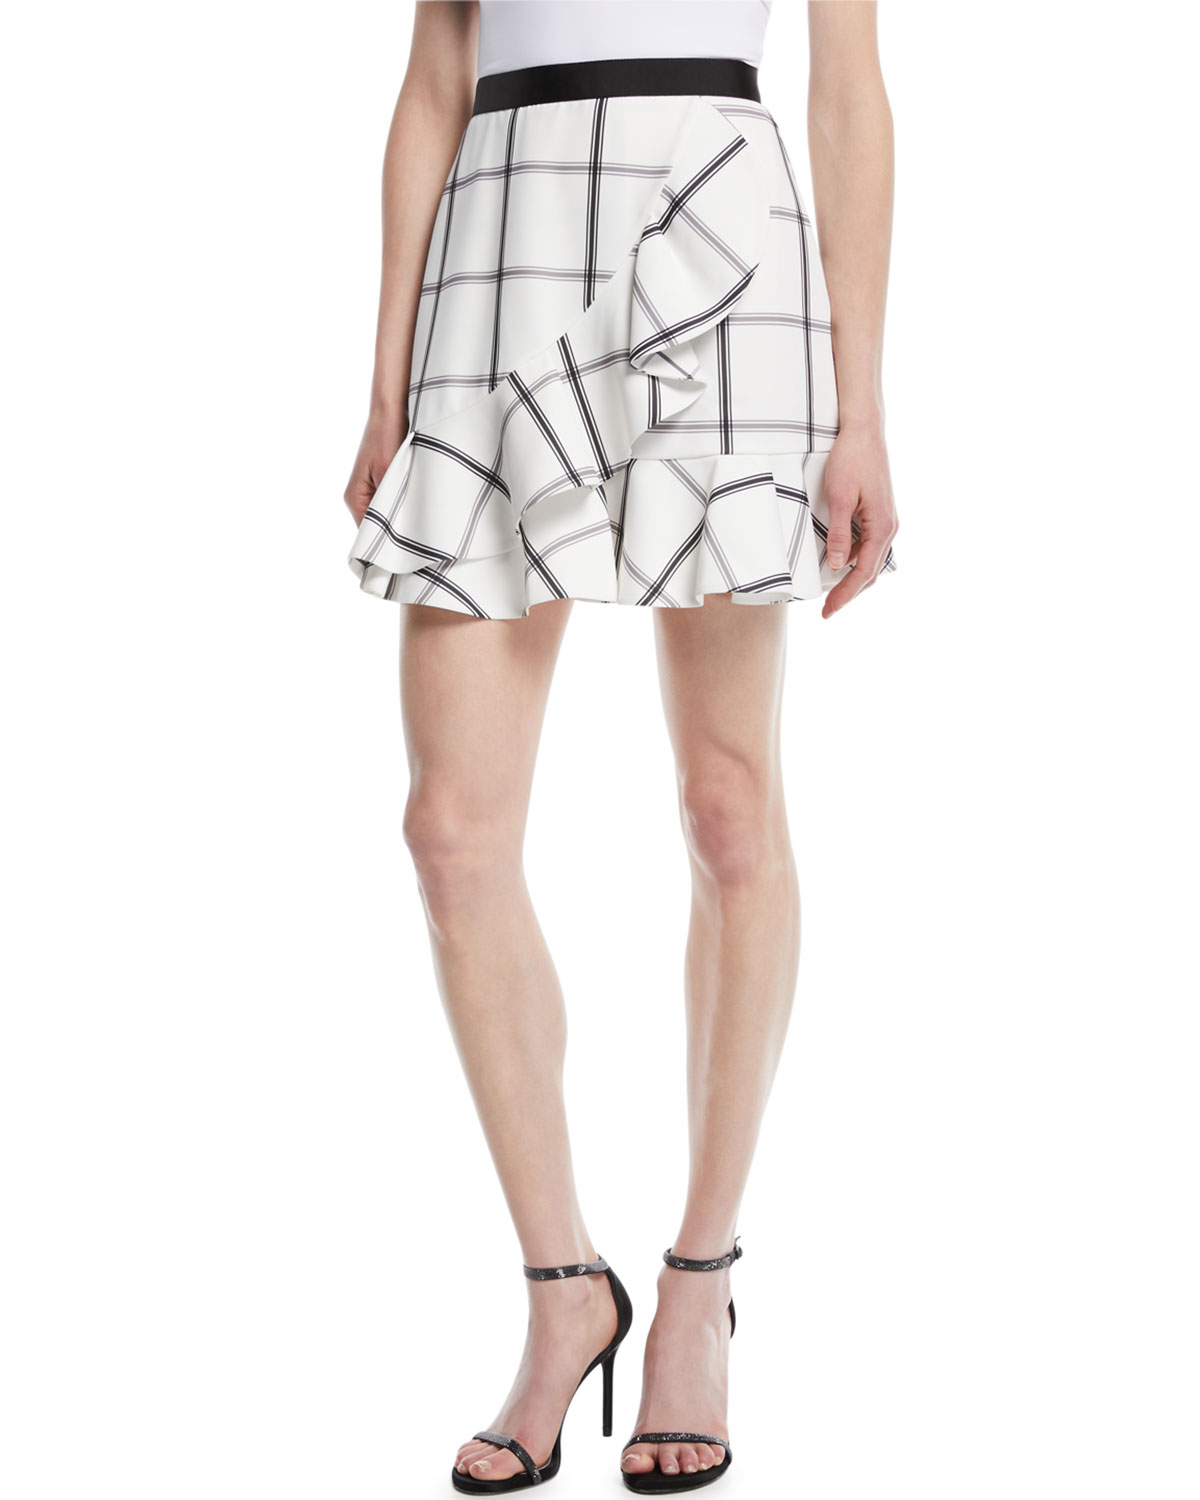 Monochrome Check Frill Skirt by Self Portrait